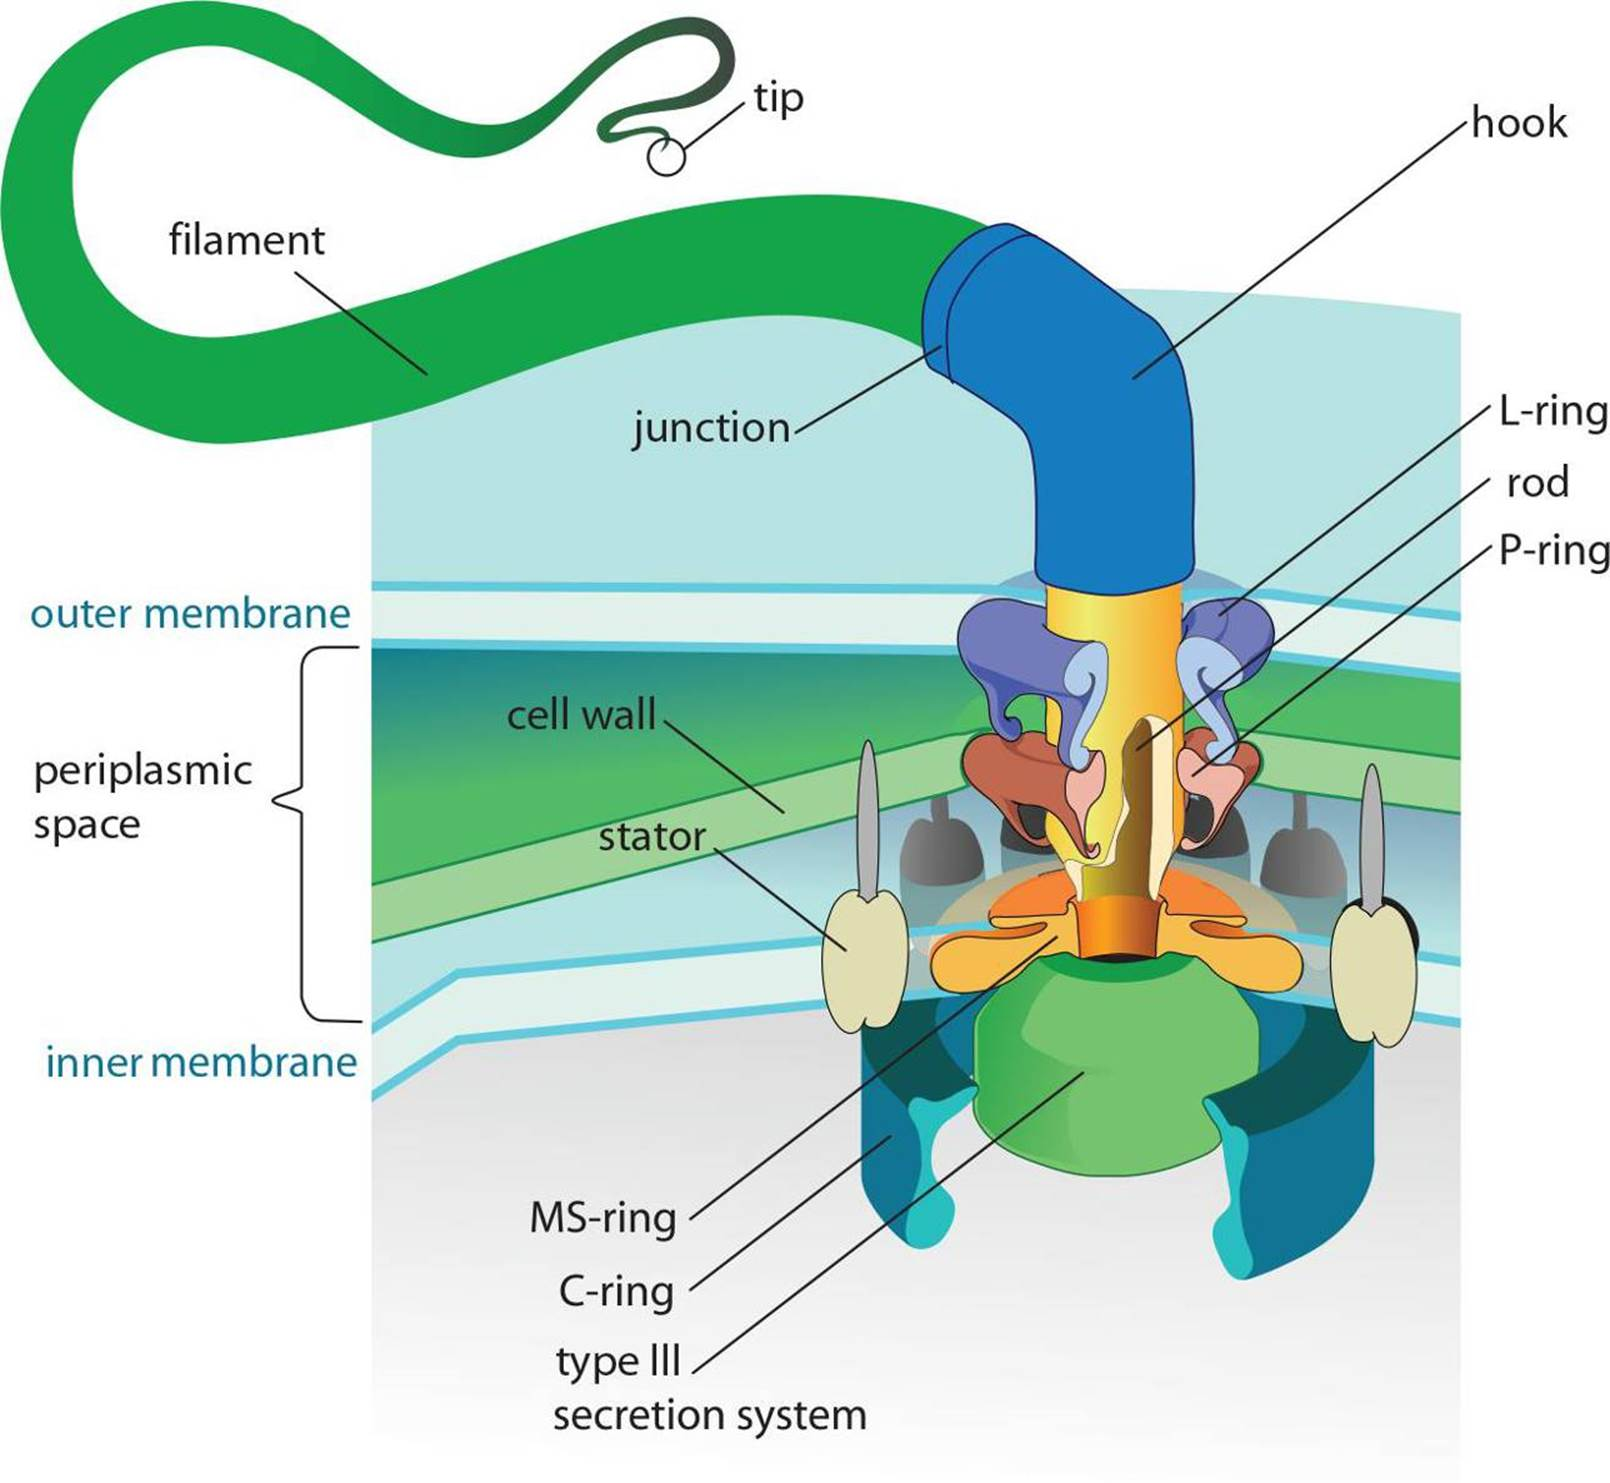 Classification and structure of prokaryotic cells the cell prokaryotic flagellum structure the filament connects via the hook to the basal body the complex structure of which is shown pooptronica Choice Image